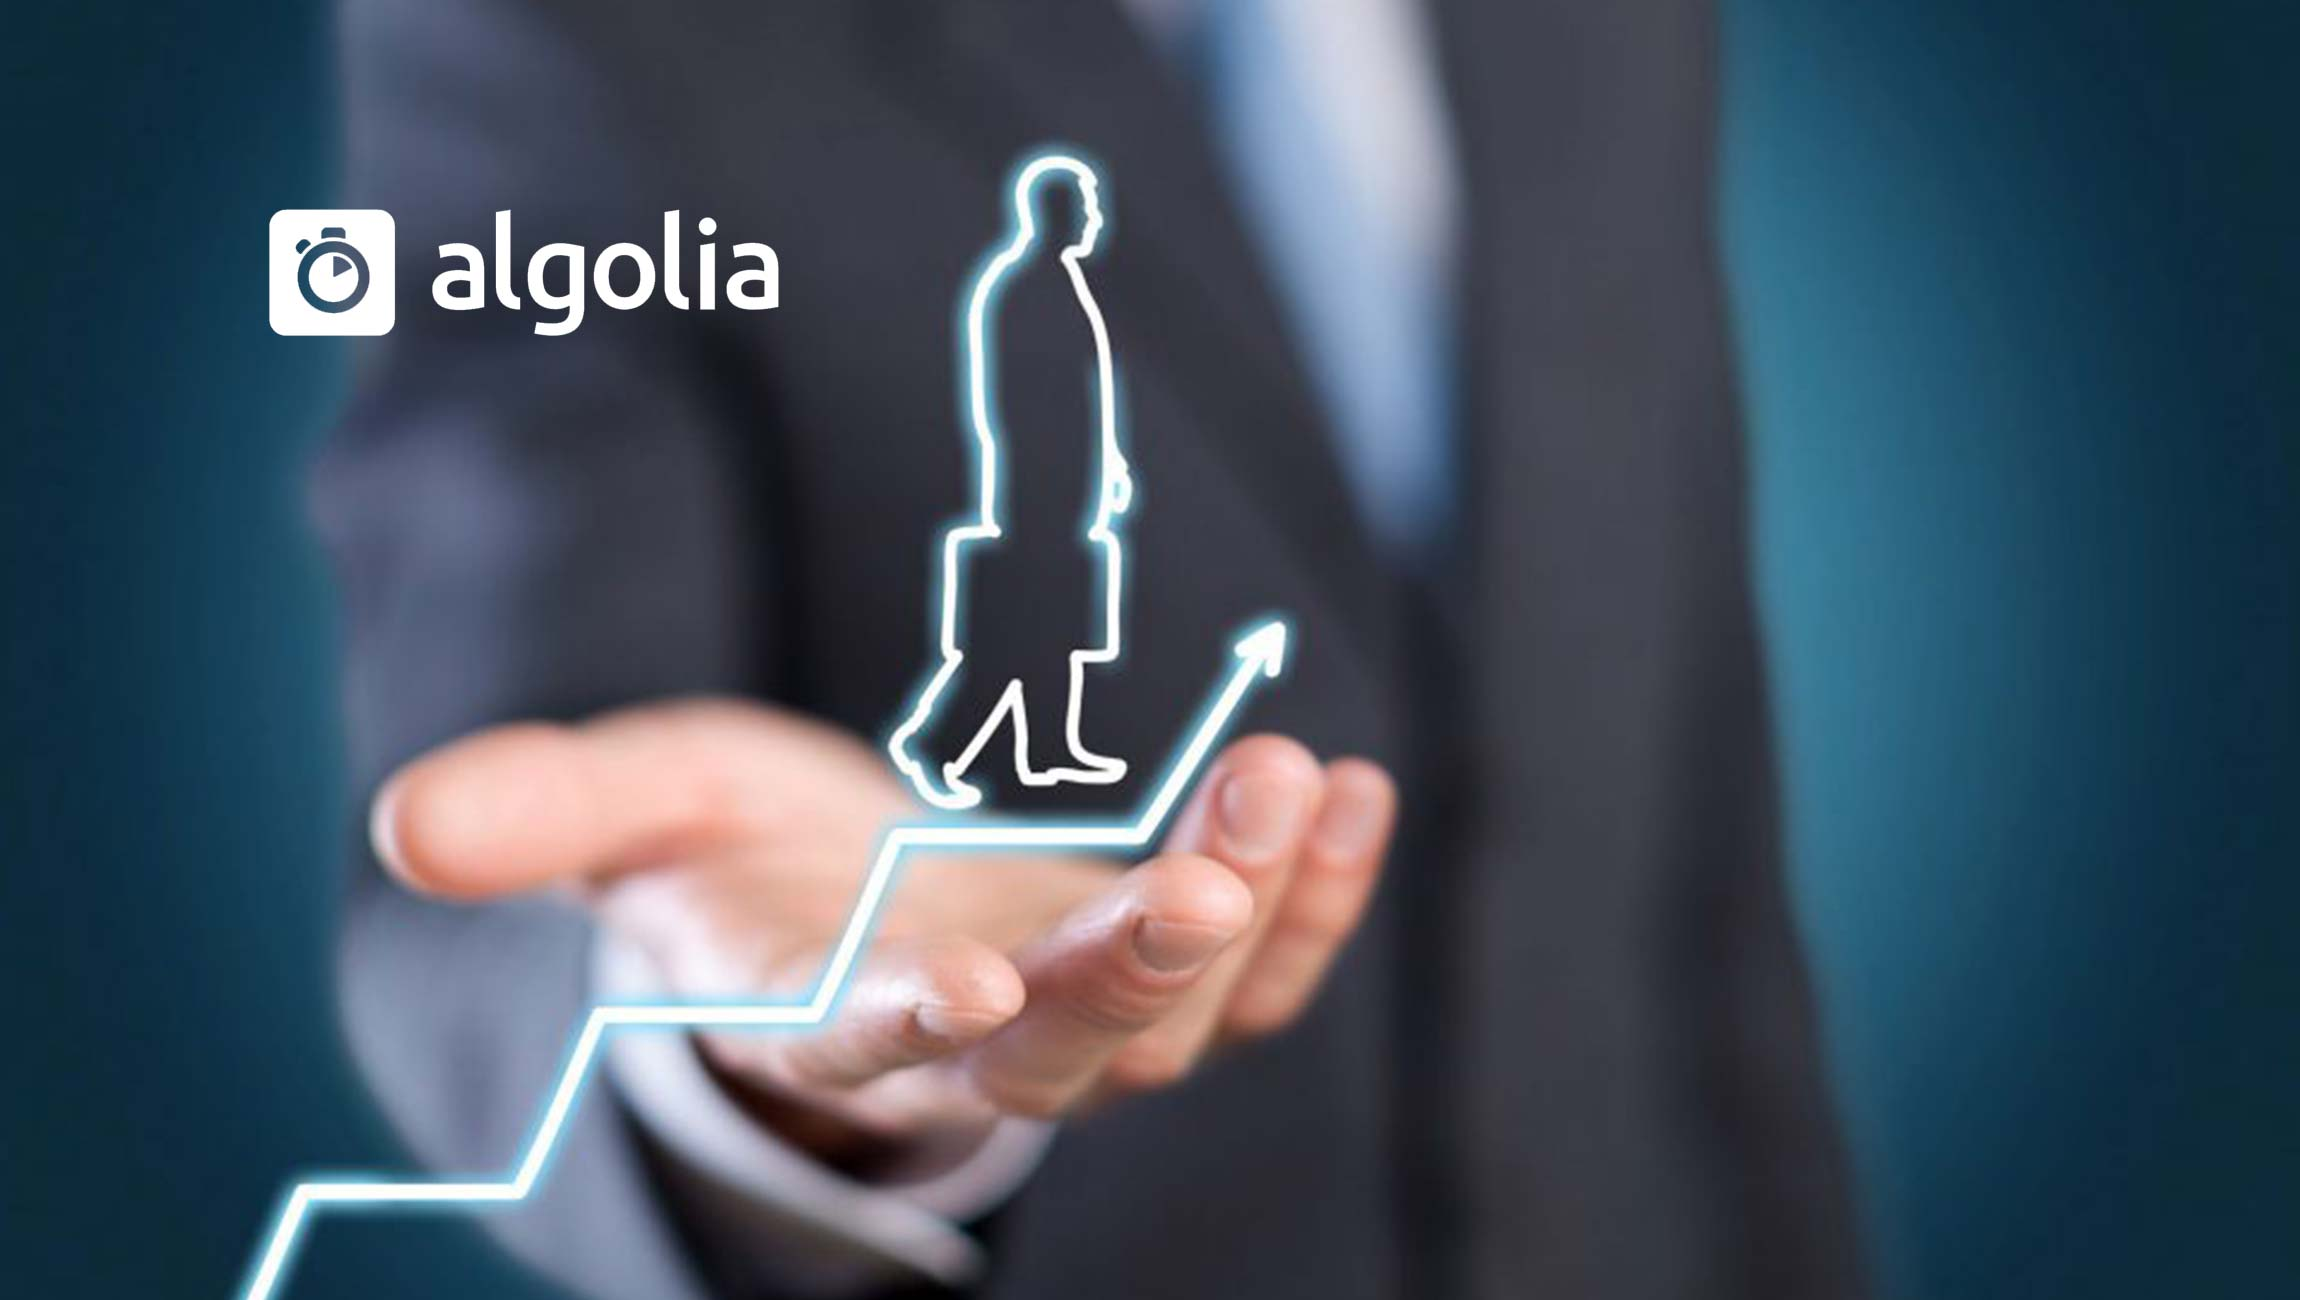 Algolia Hires New CEO to Lead Next Stage of Company Growth